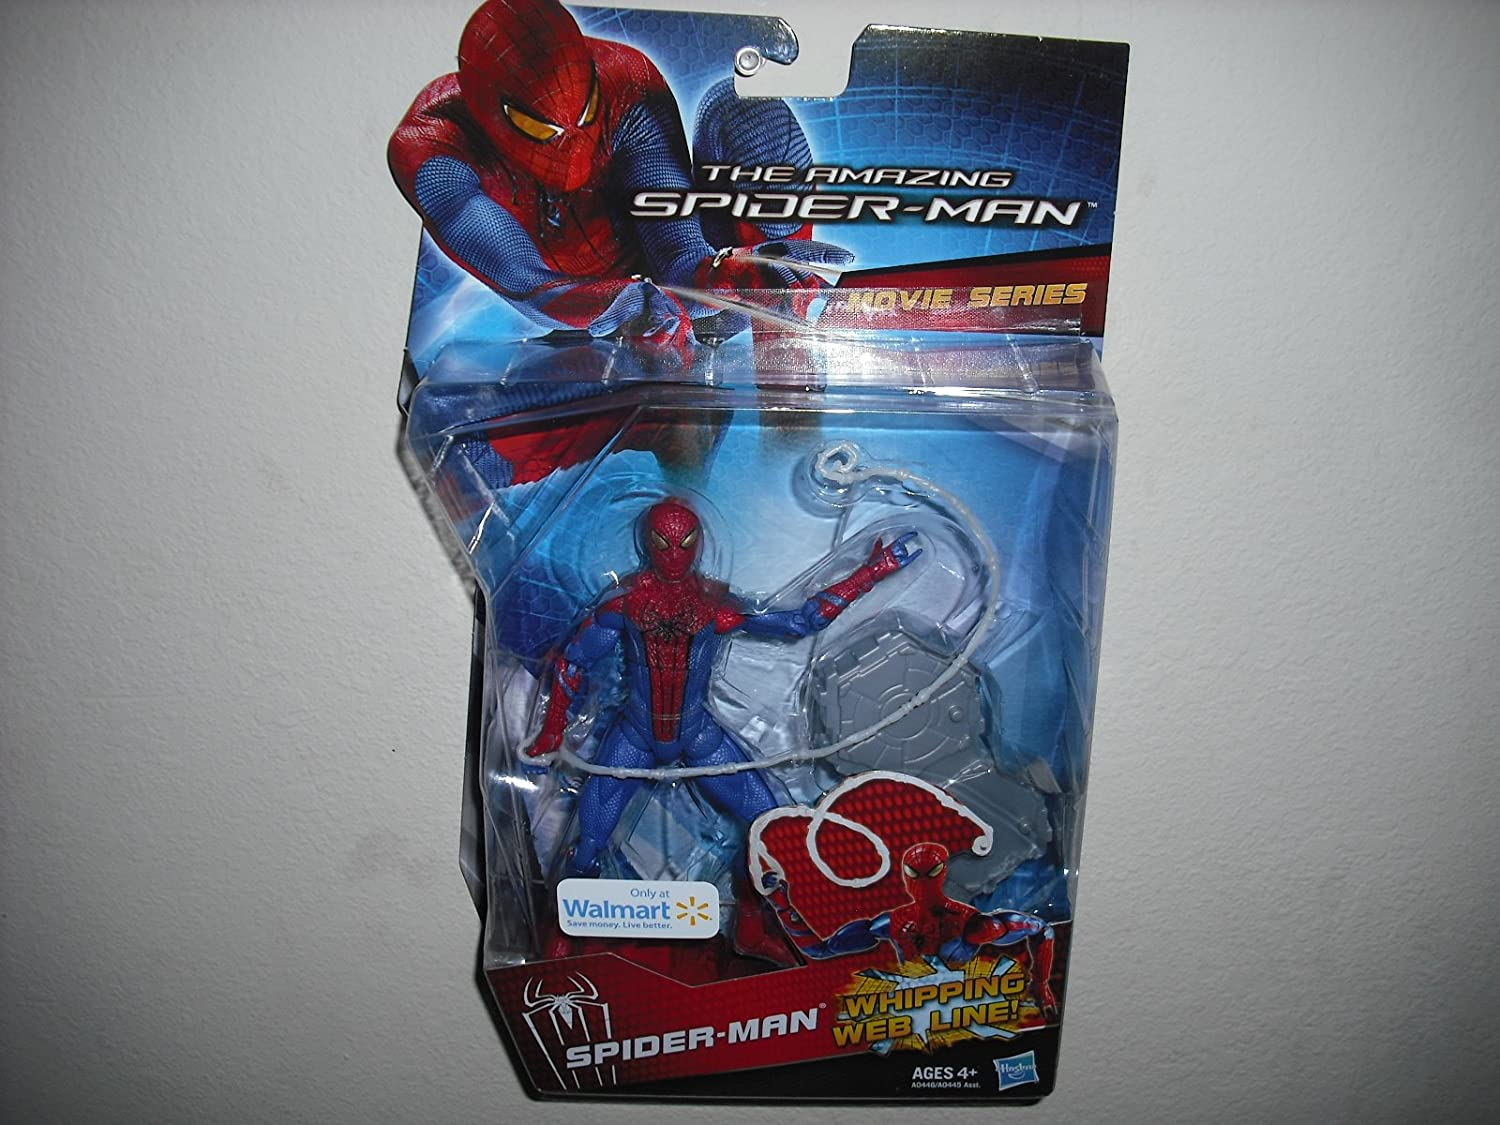 Amazon.com: The Amazing Spiderman Movie Series 6 Inch Whipping Web ...